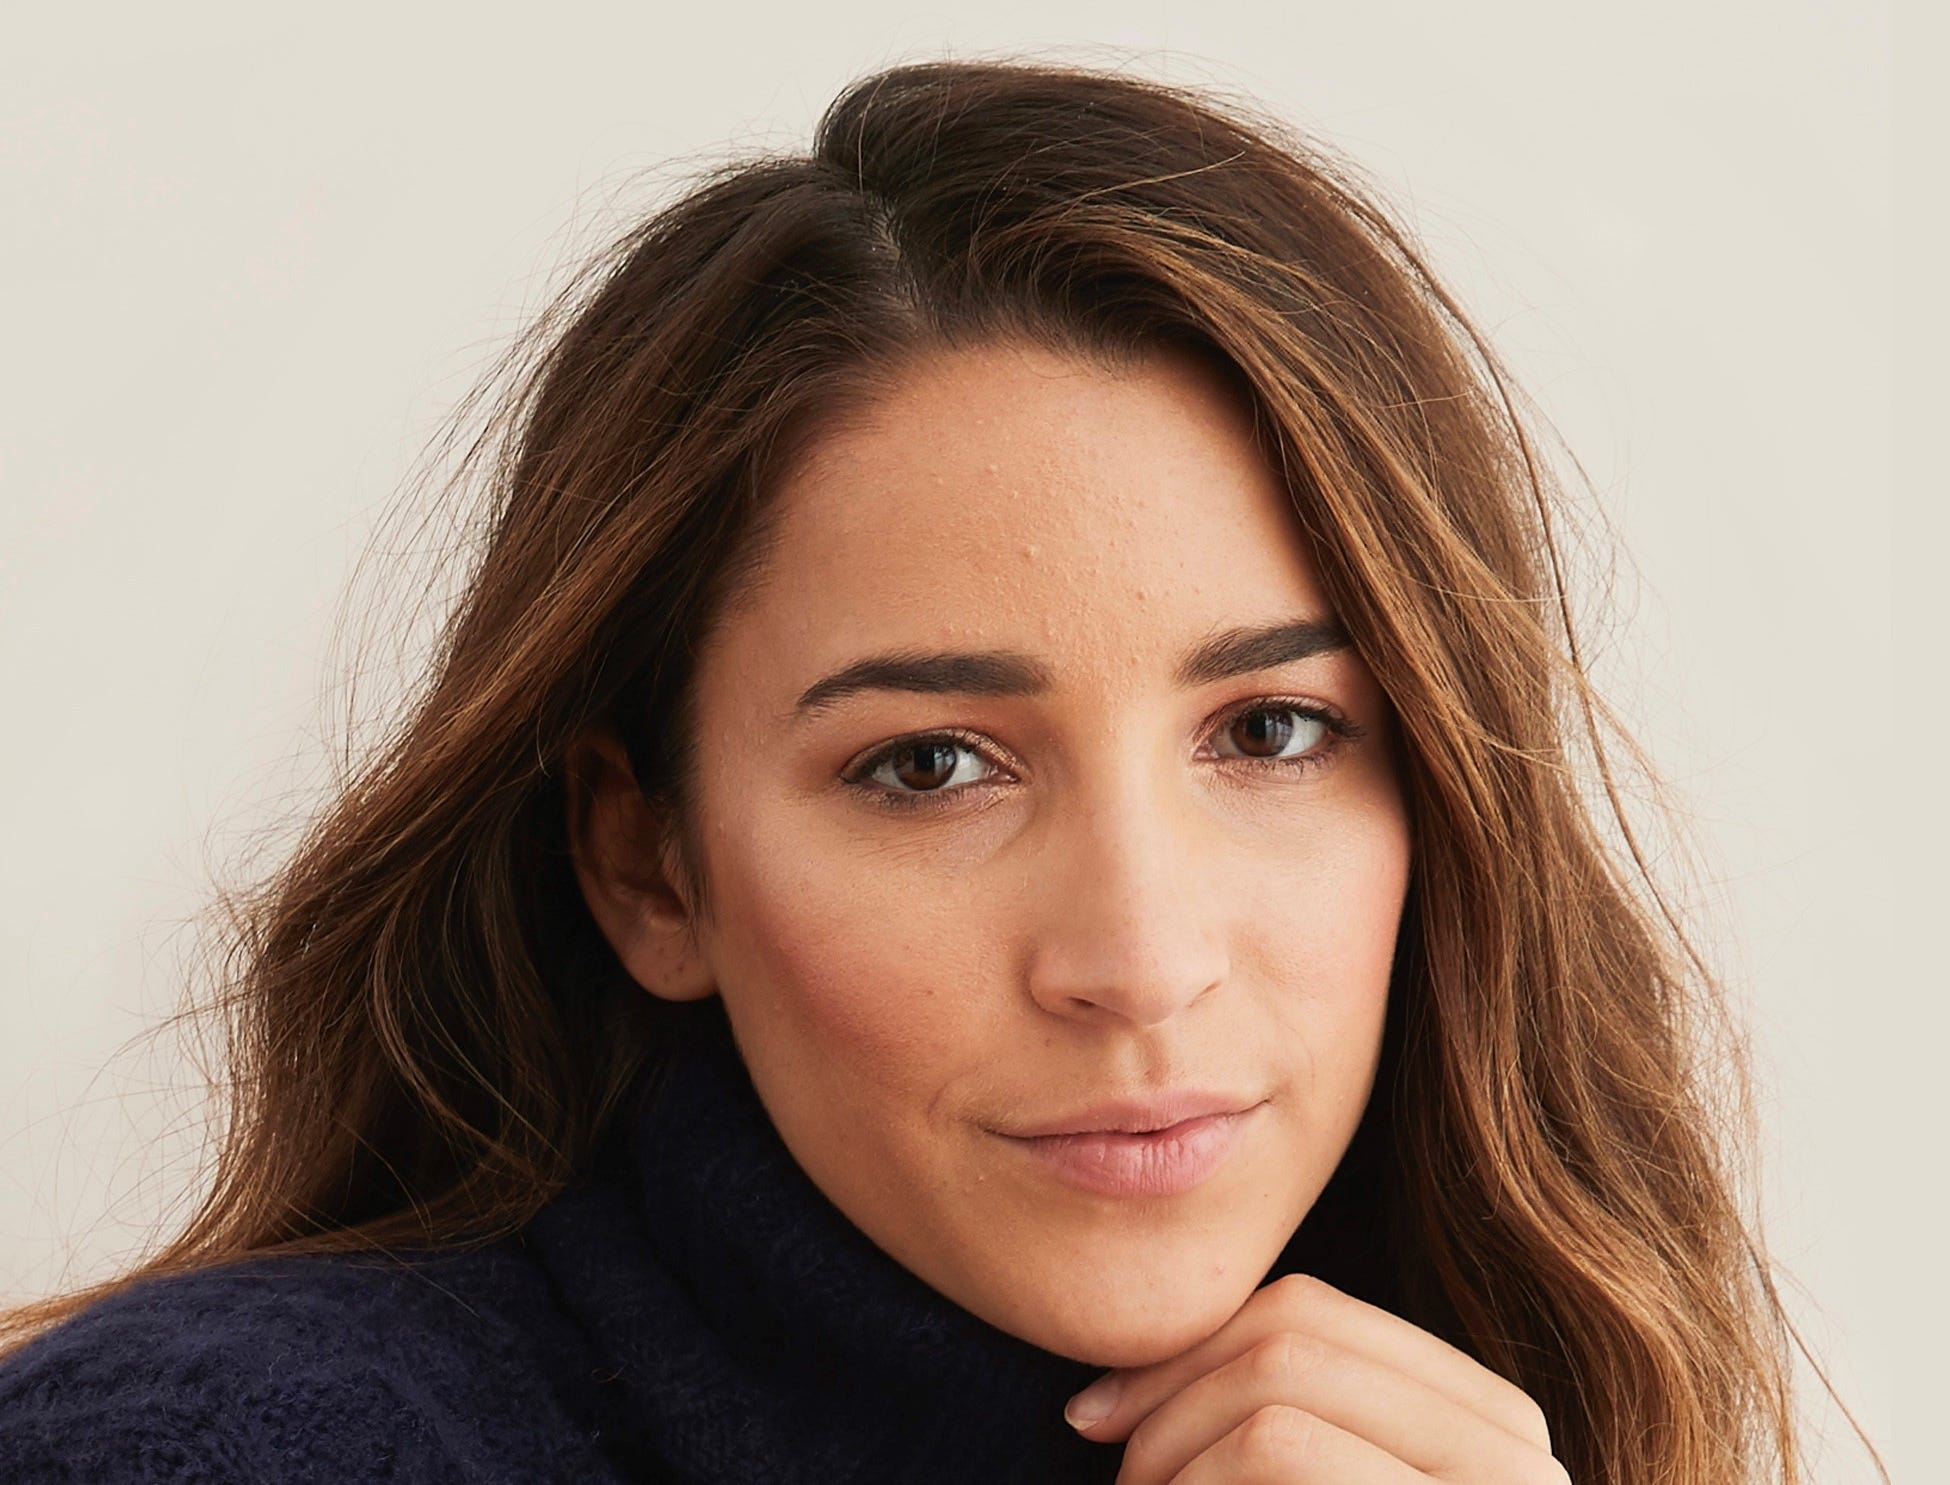 Gymnast Aly Raisman: Stand between an abuser and victim, 'You'll save lives'